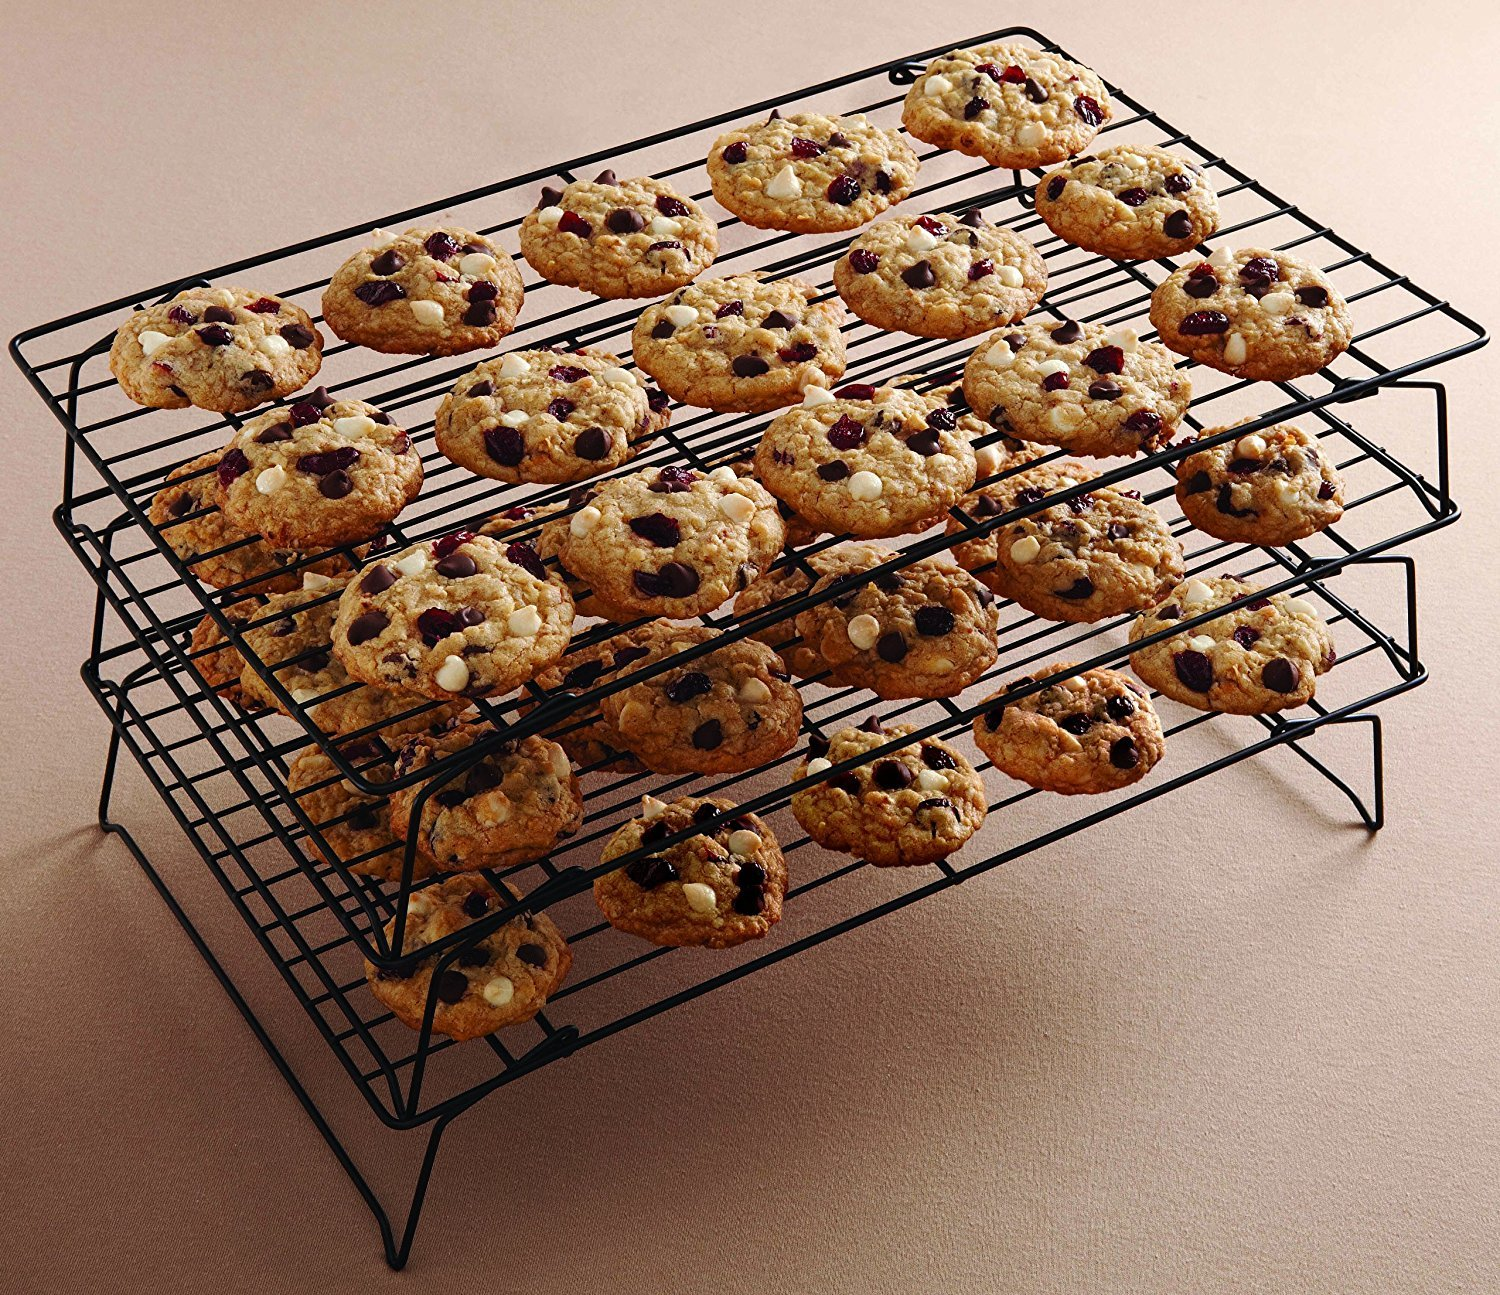 Wilton 3 Tier Cooling Grid - Black by Wilton (Image #1)